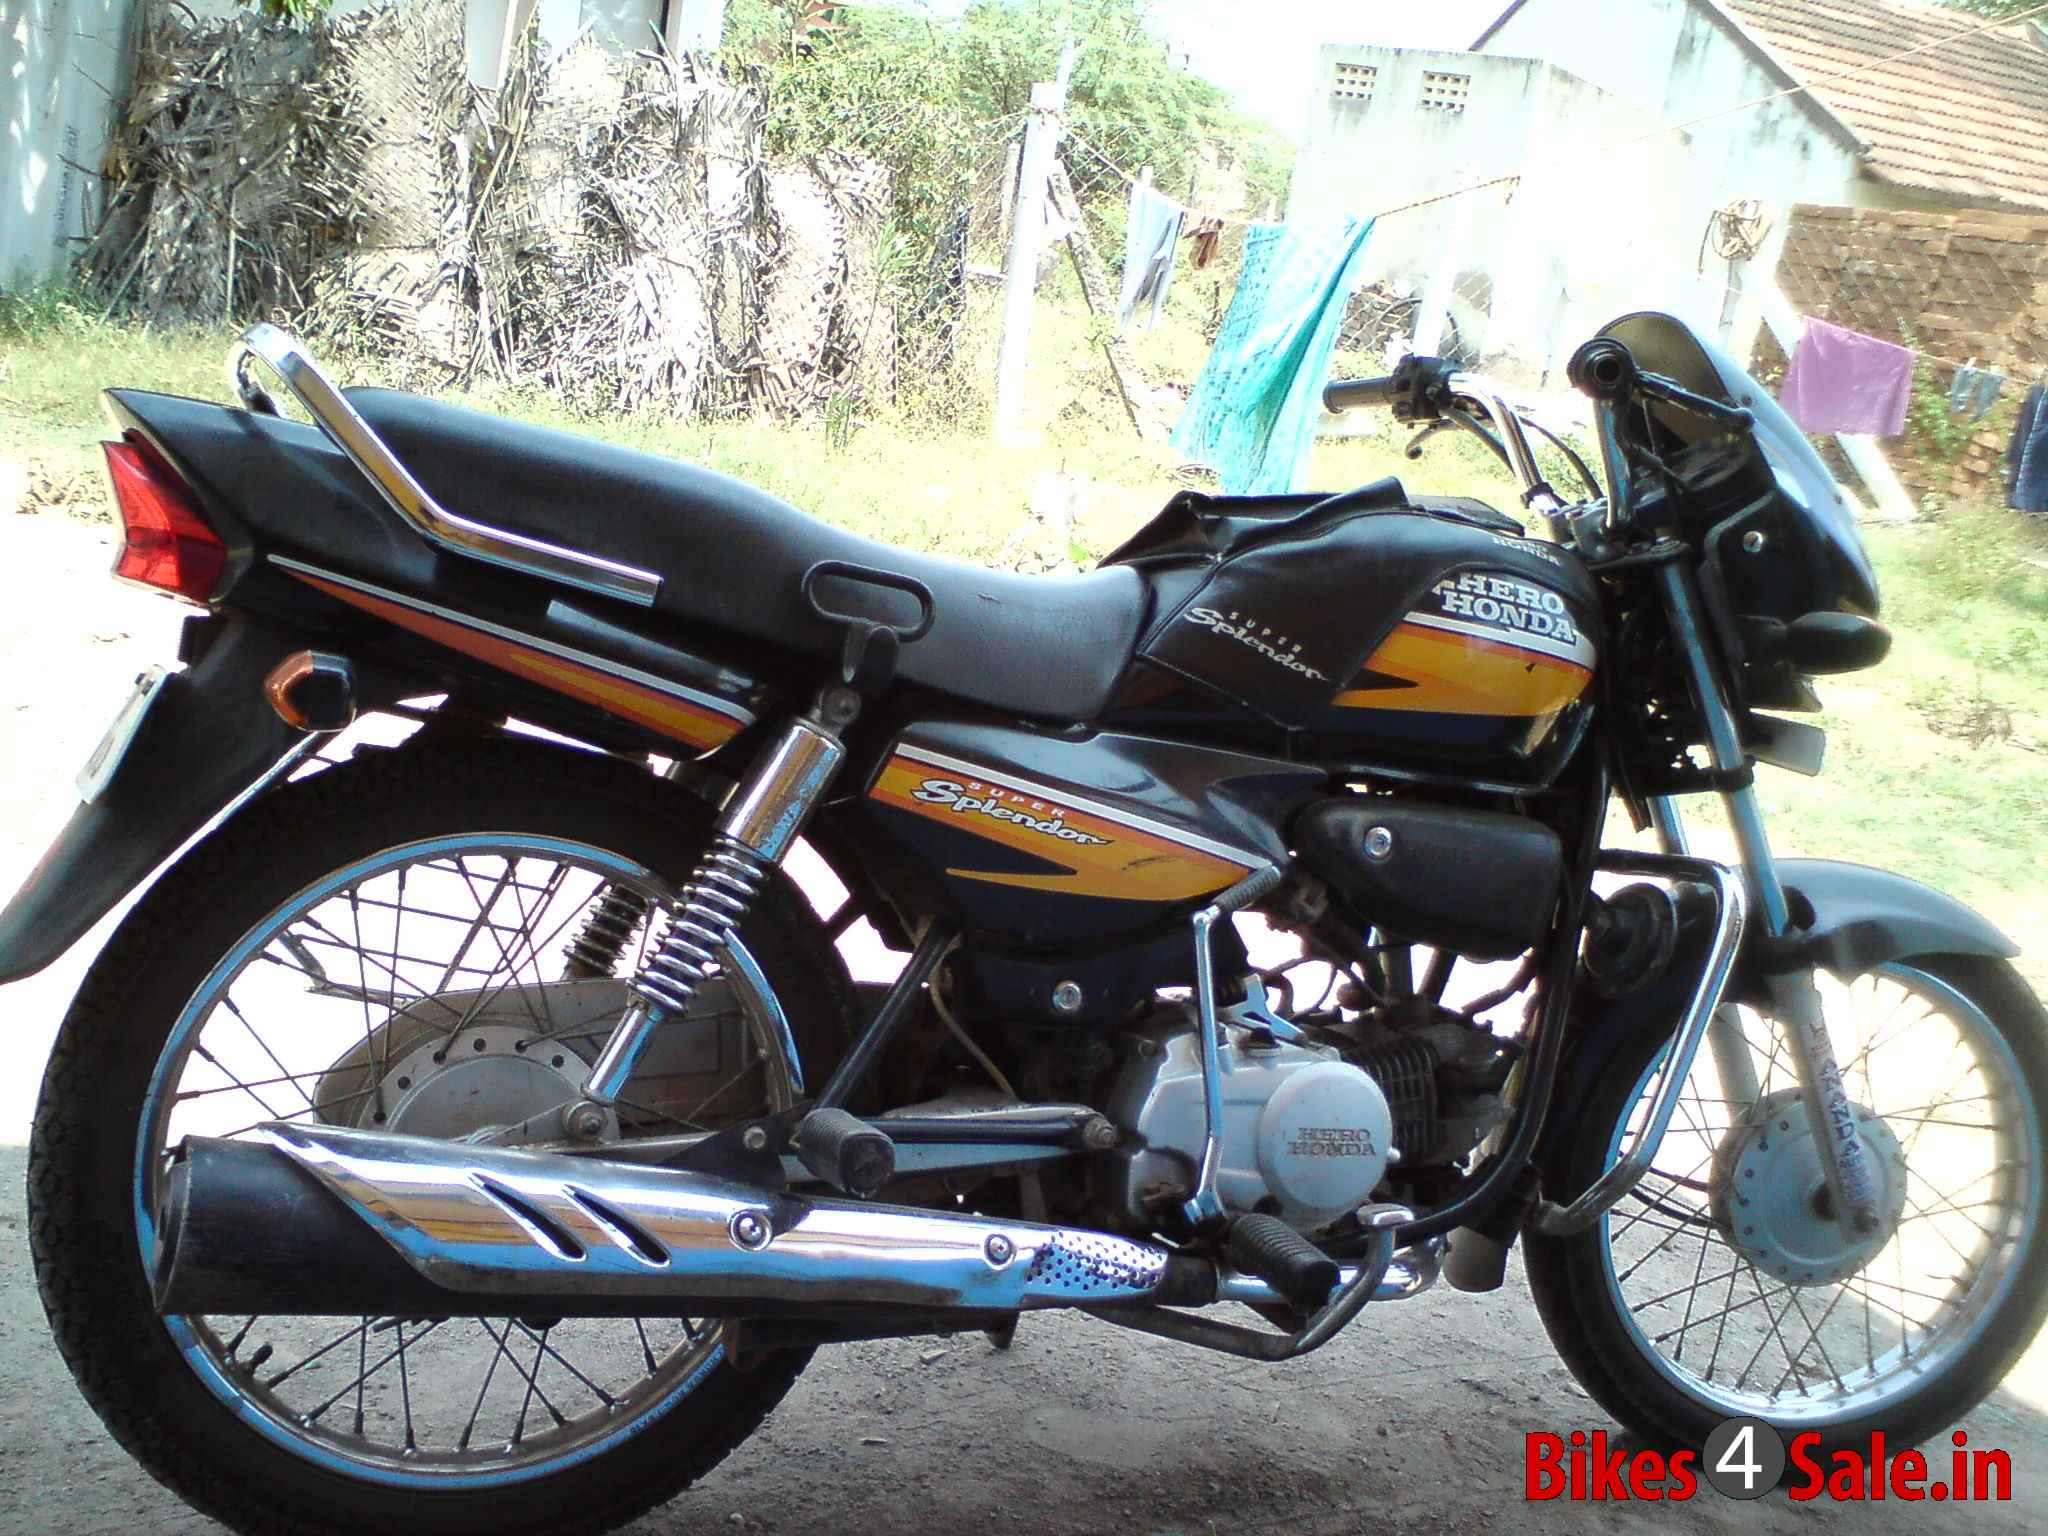 Hero Honda Splendor 2007 images #95884